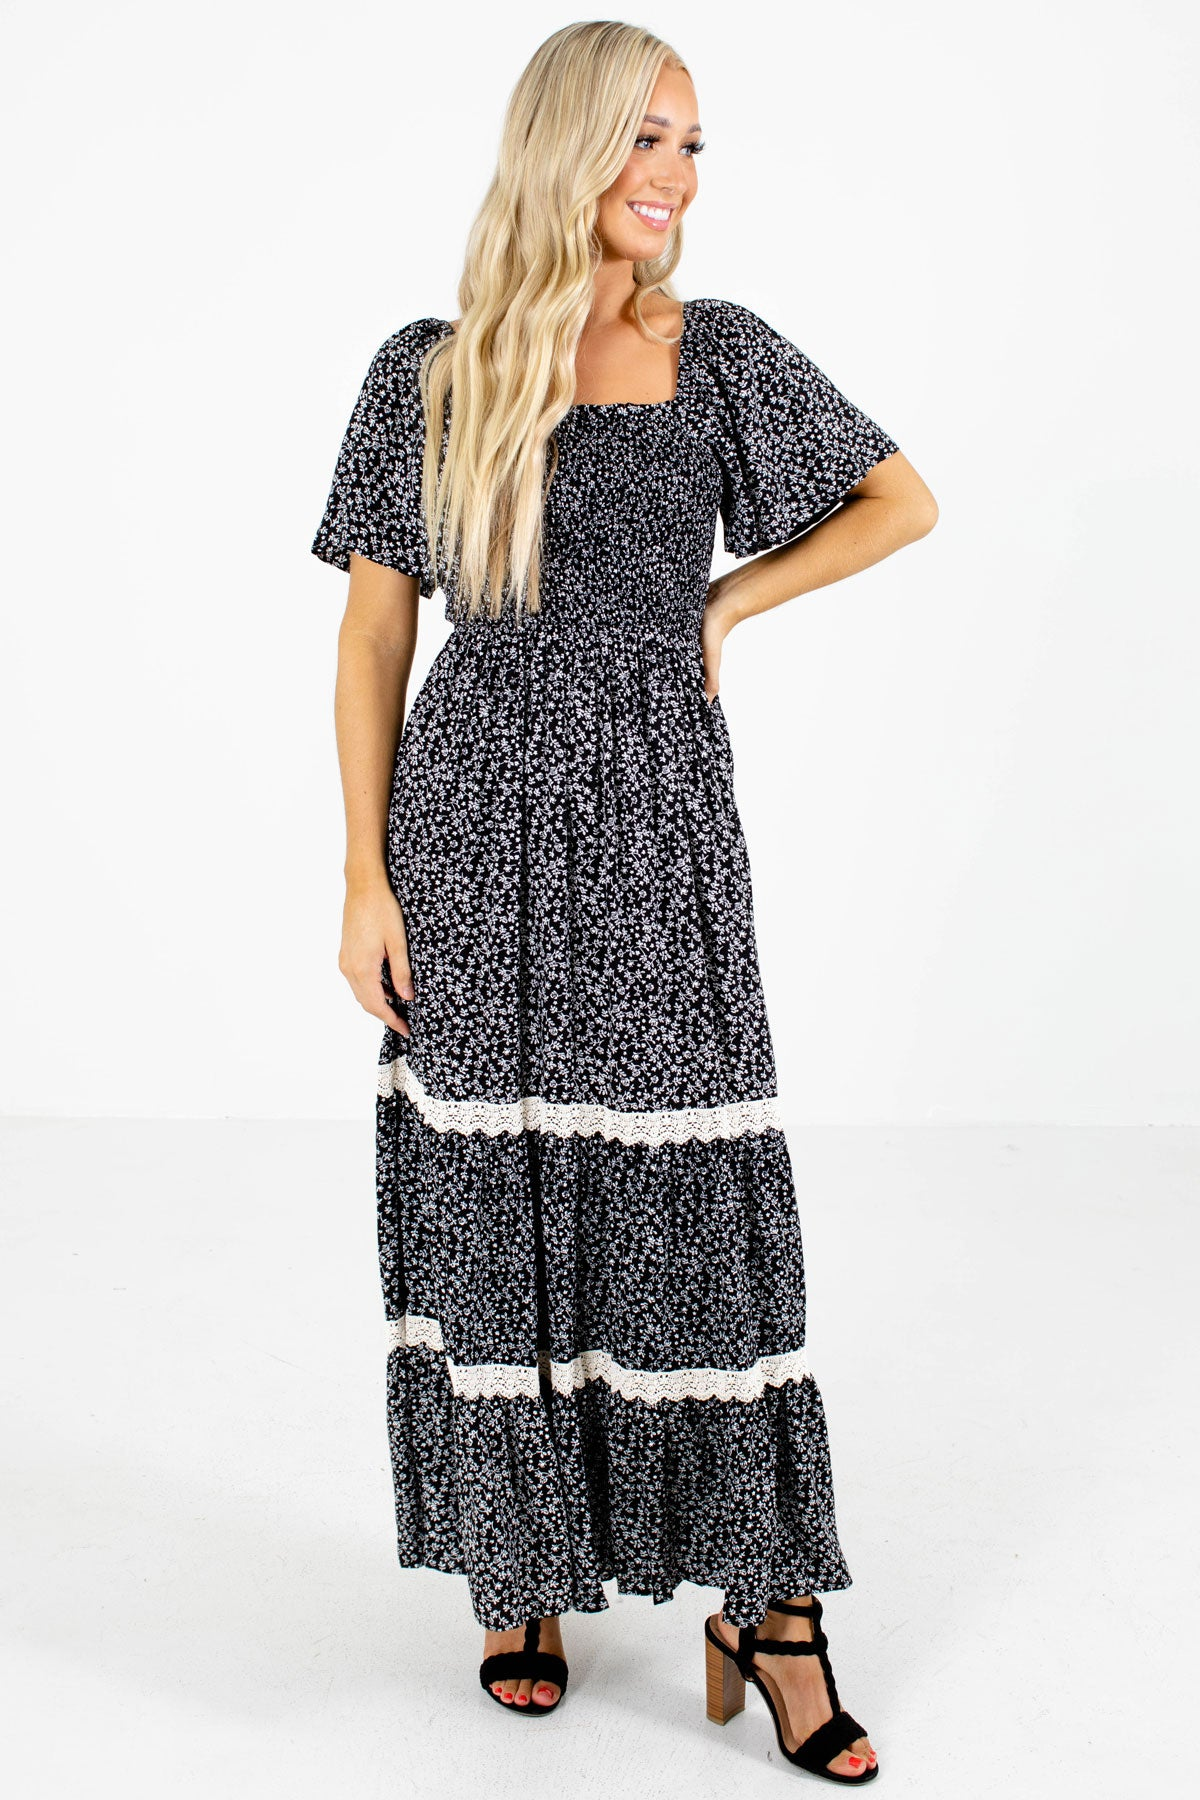 Black and White Floral Boutique Maxi Dresses for Women